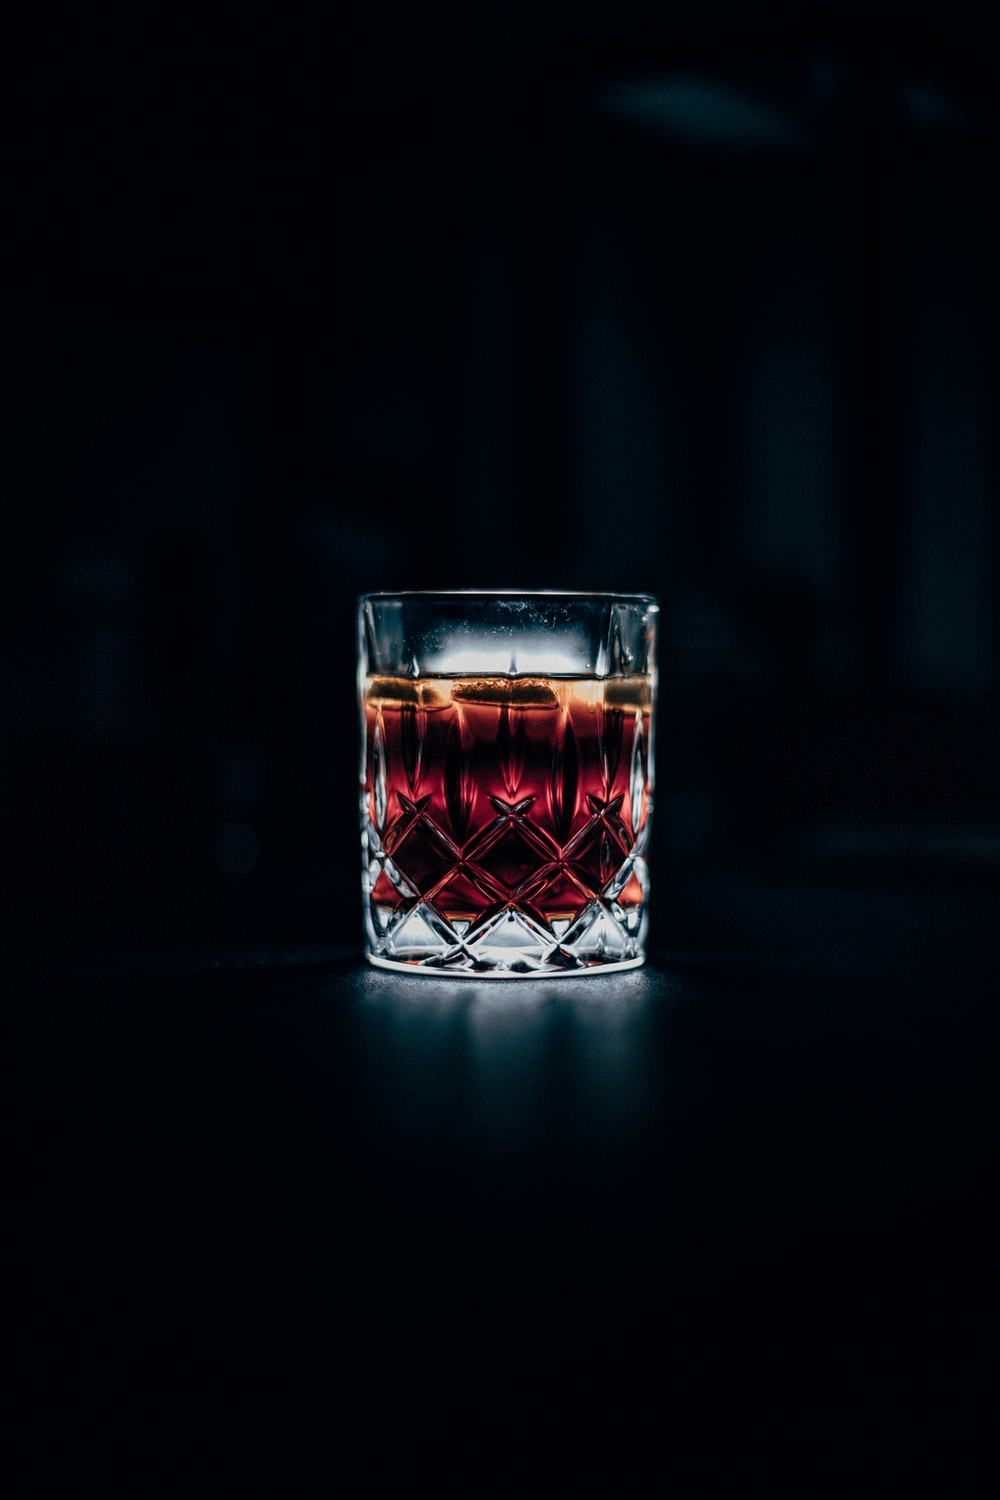 clear drinking glass filled with red liquid